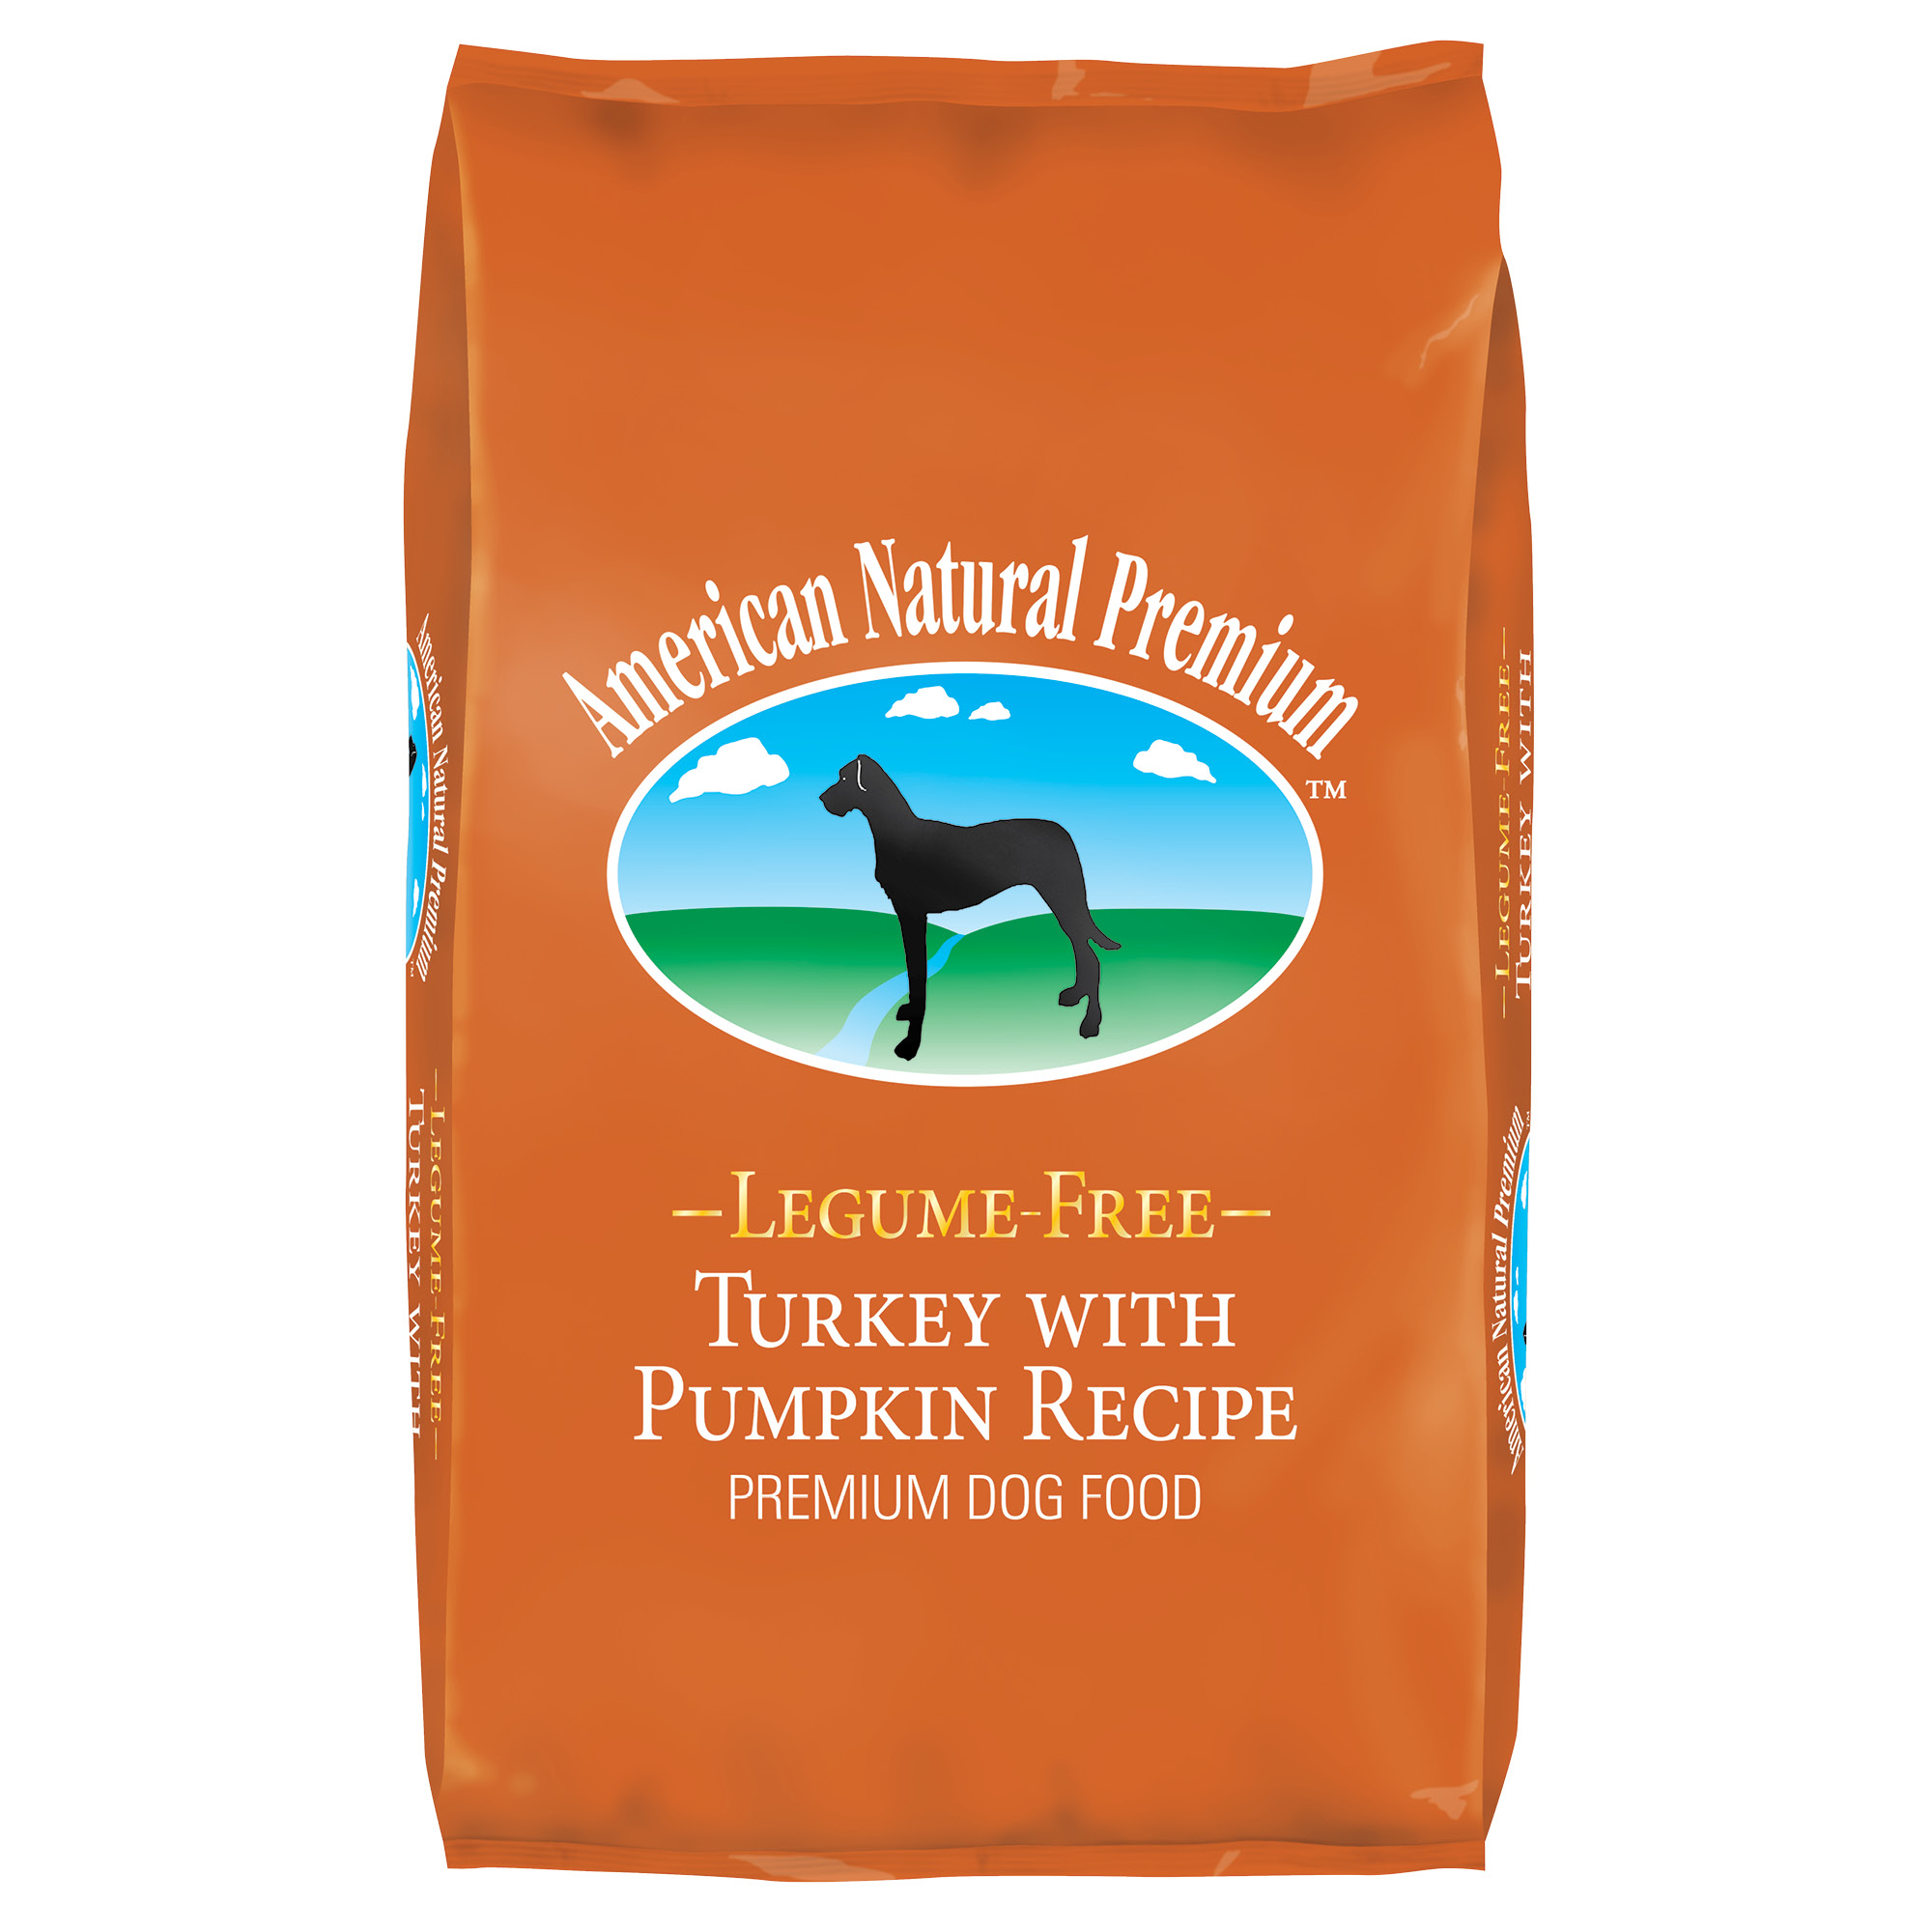 American Natural Premium Turkey with Pumpkin Recipe Dry Dog Food, 30-lb